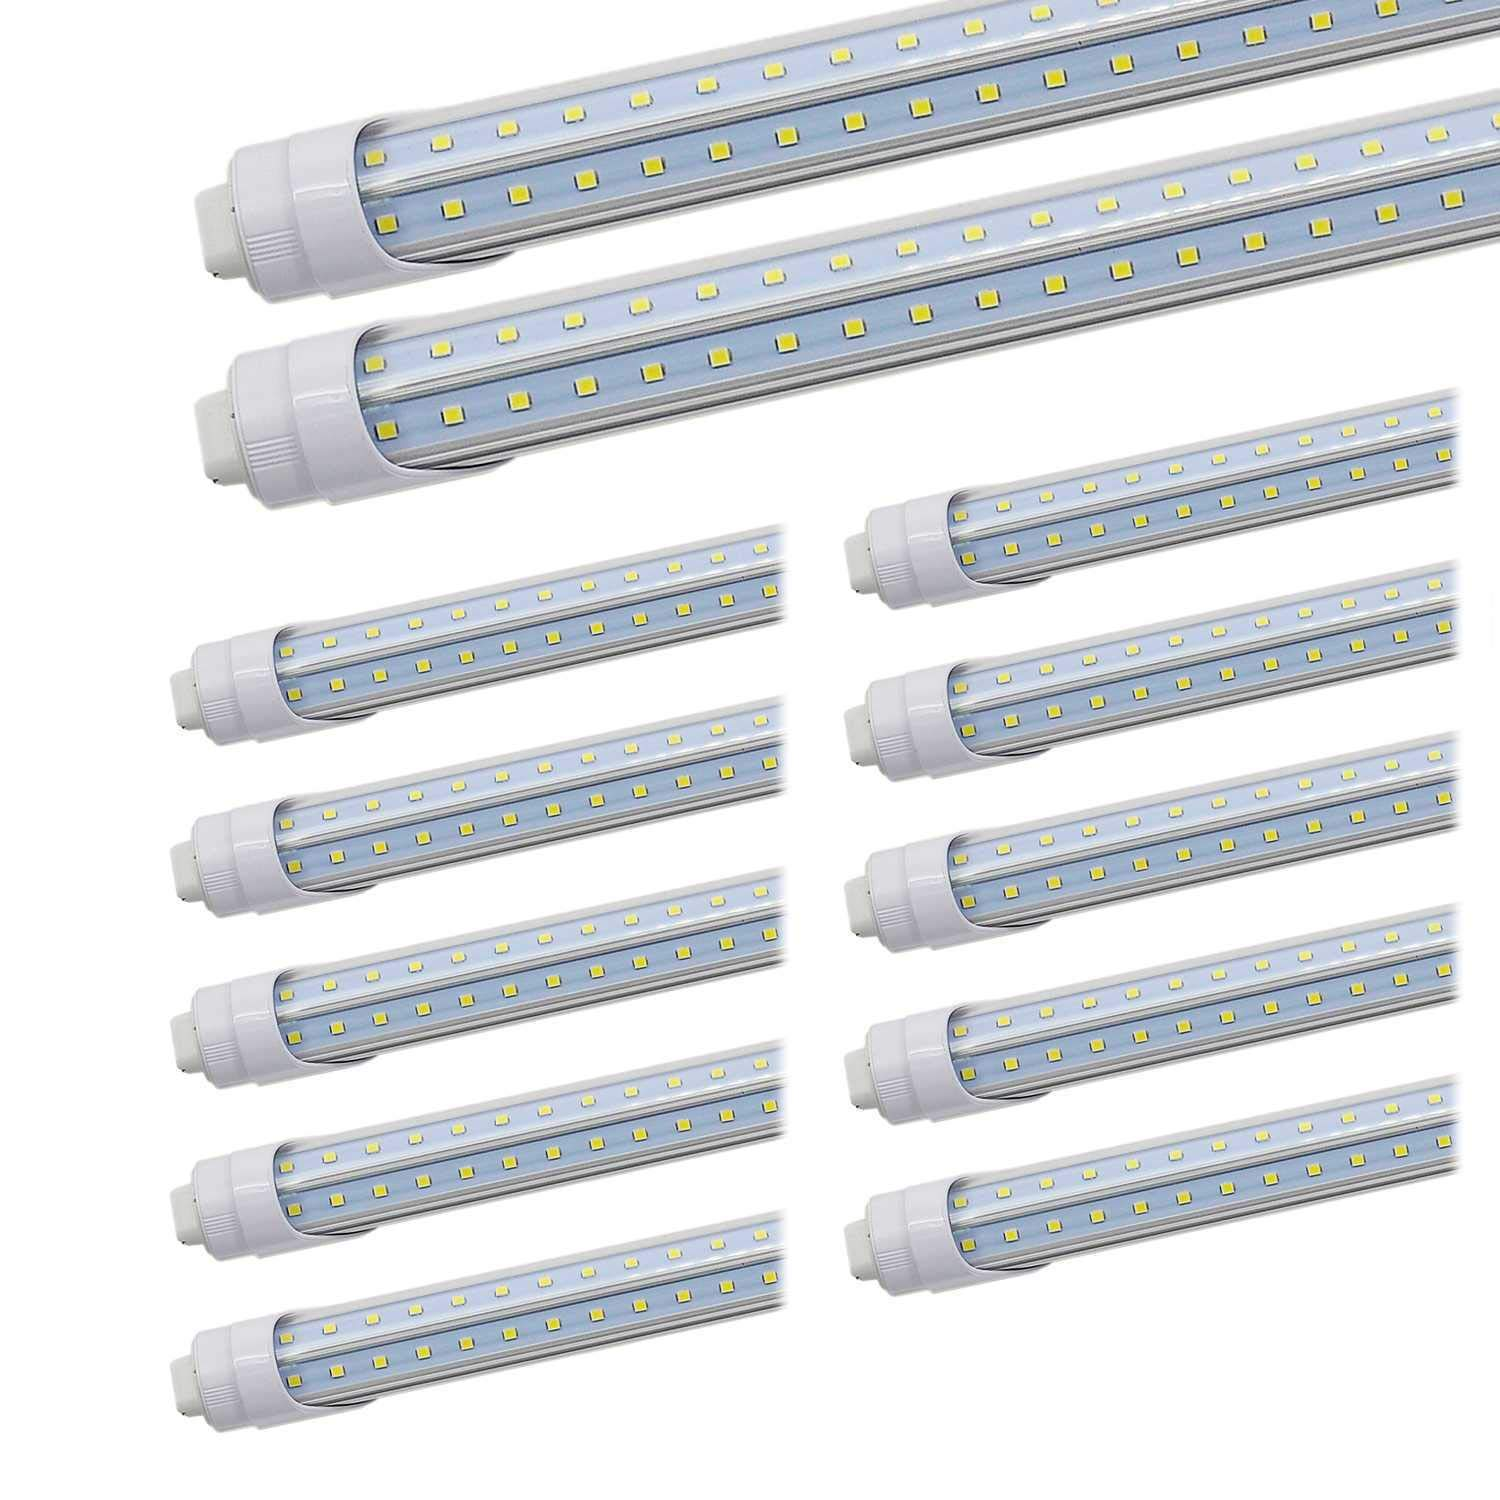 JESLED R17D/HO 8FT LED Bulb - Rotate V shaped, 5000K Daylight 50W, 6750LM, 110W Equivalent F96T12/DW/HO, Clear Cover, T8/T10/T12 Replacement, Dual-Ended Powered, Ballast Bypass, Pack of 12 by JESLED (Image #1)